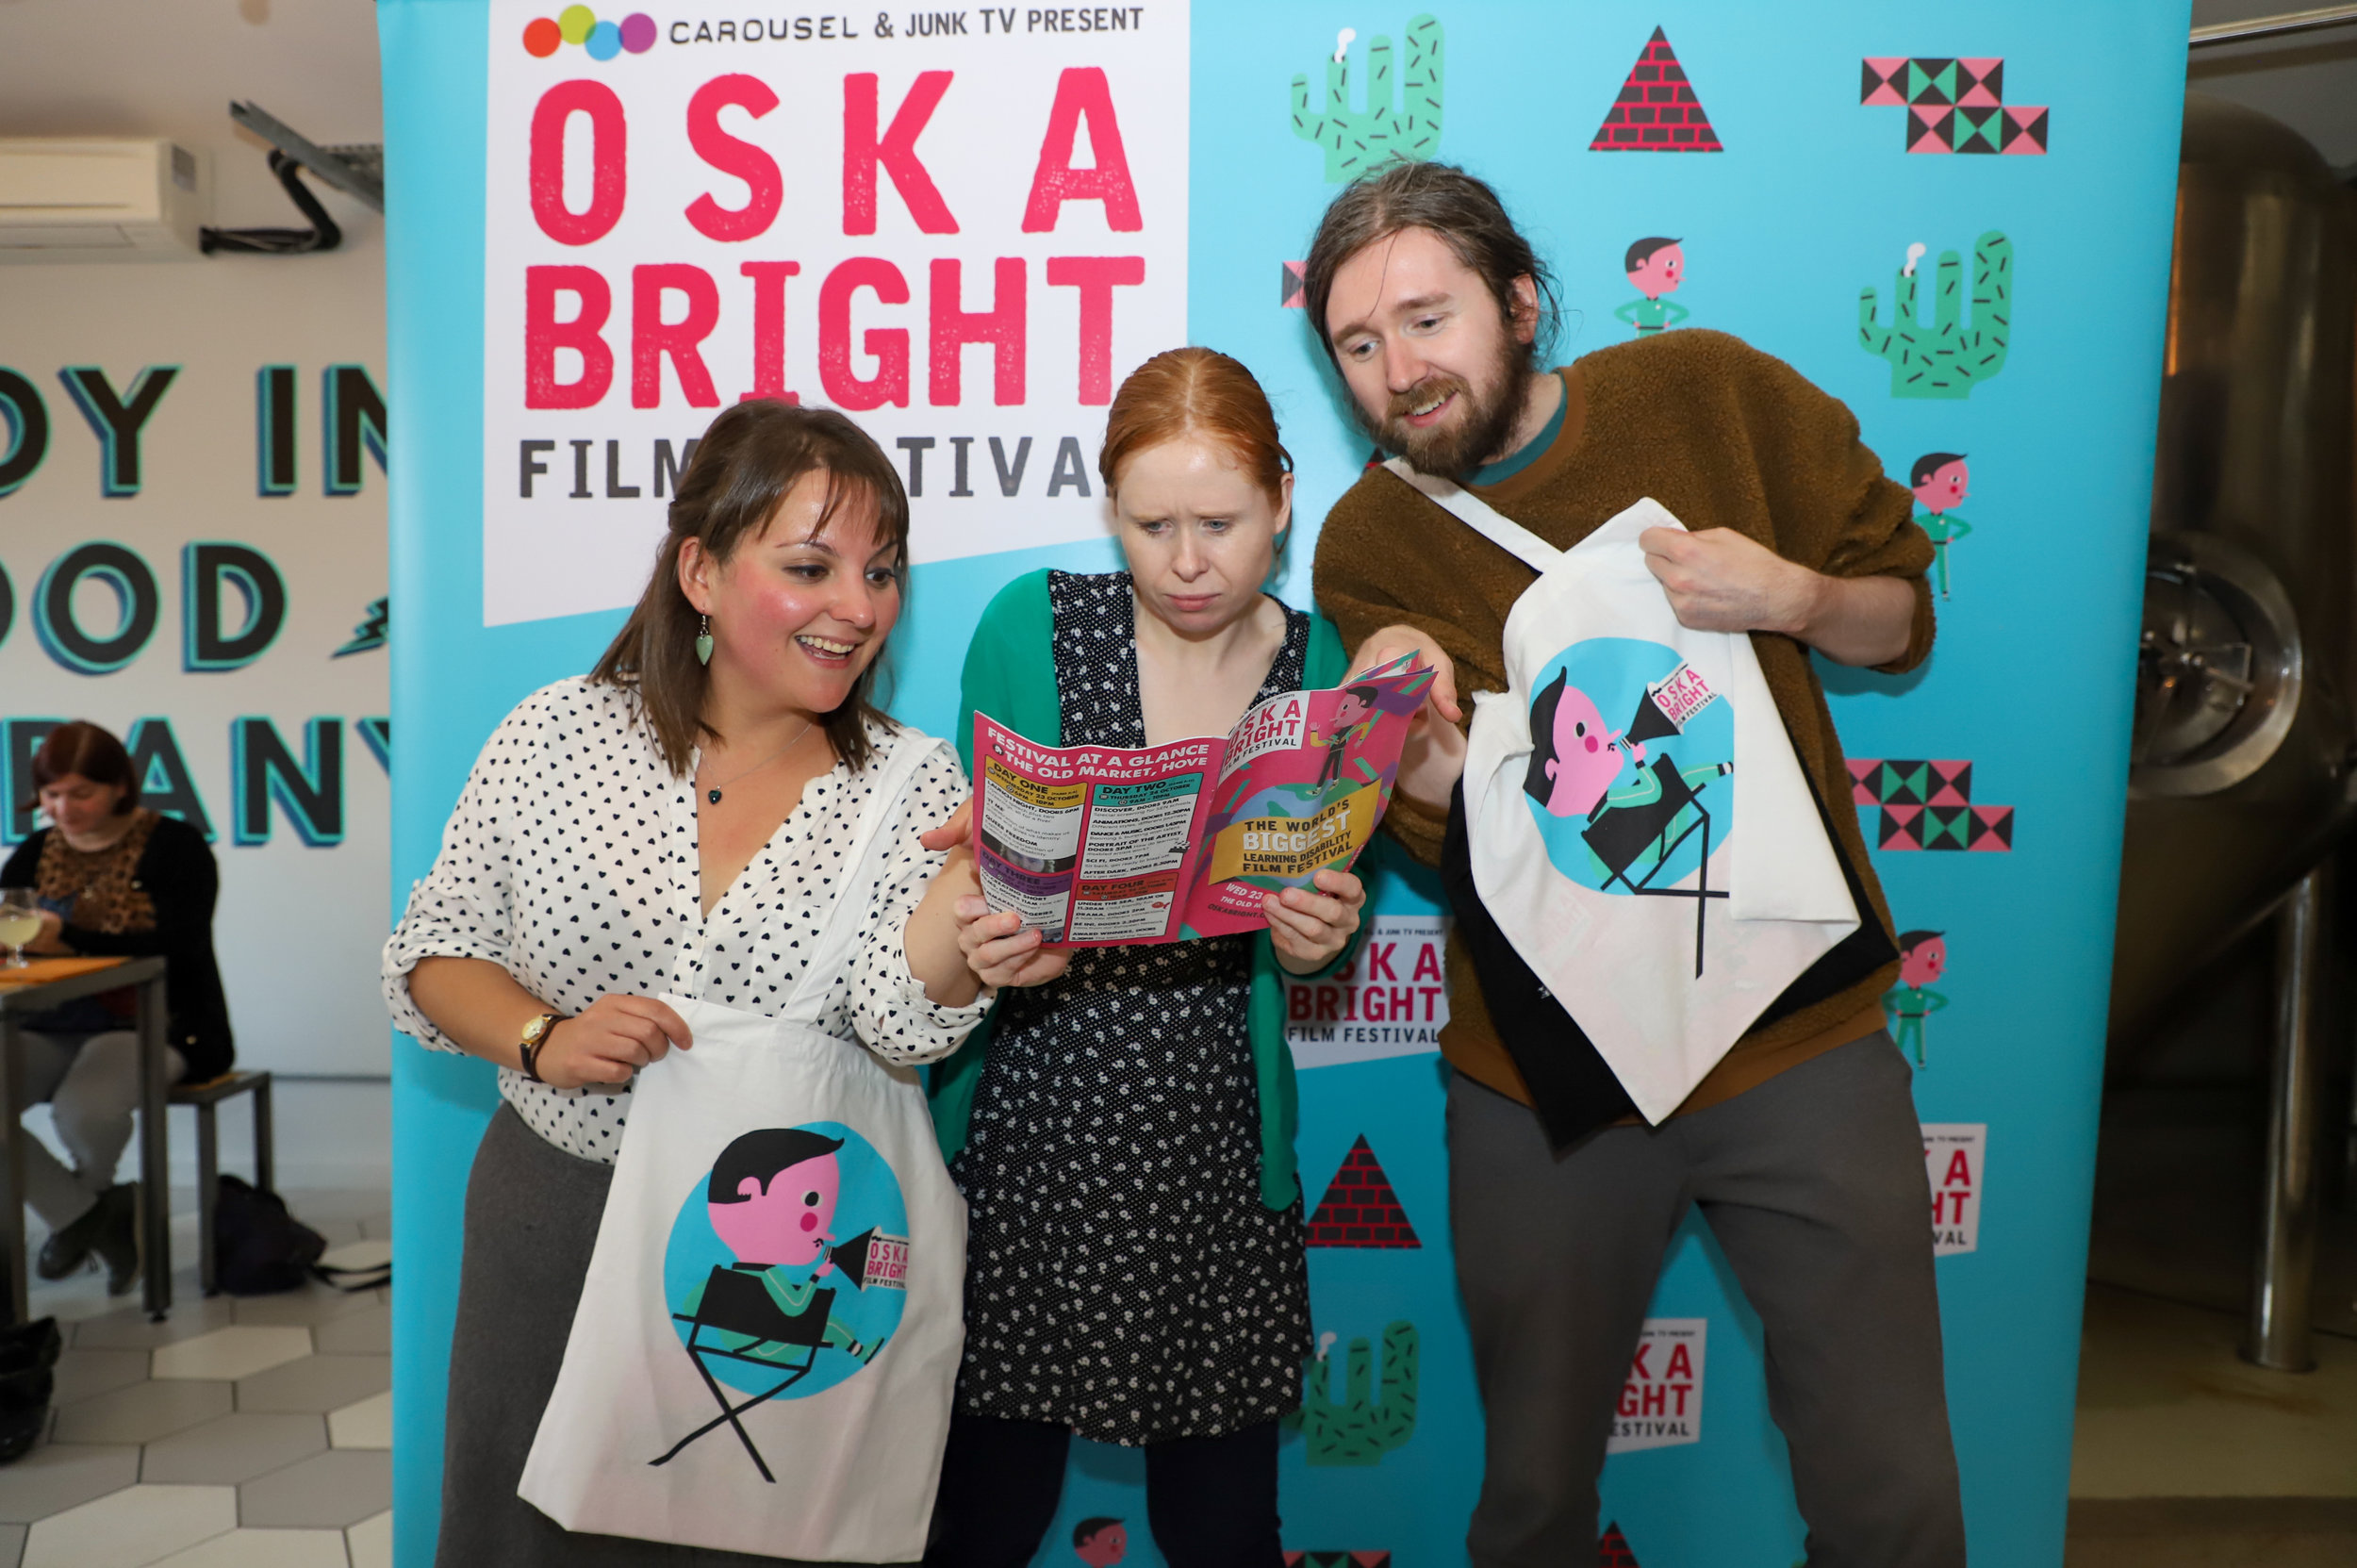 Laura and Andy from The Old Market read the Oska Bright Film Festival programme with Sarah Watson